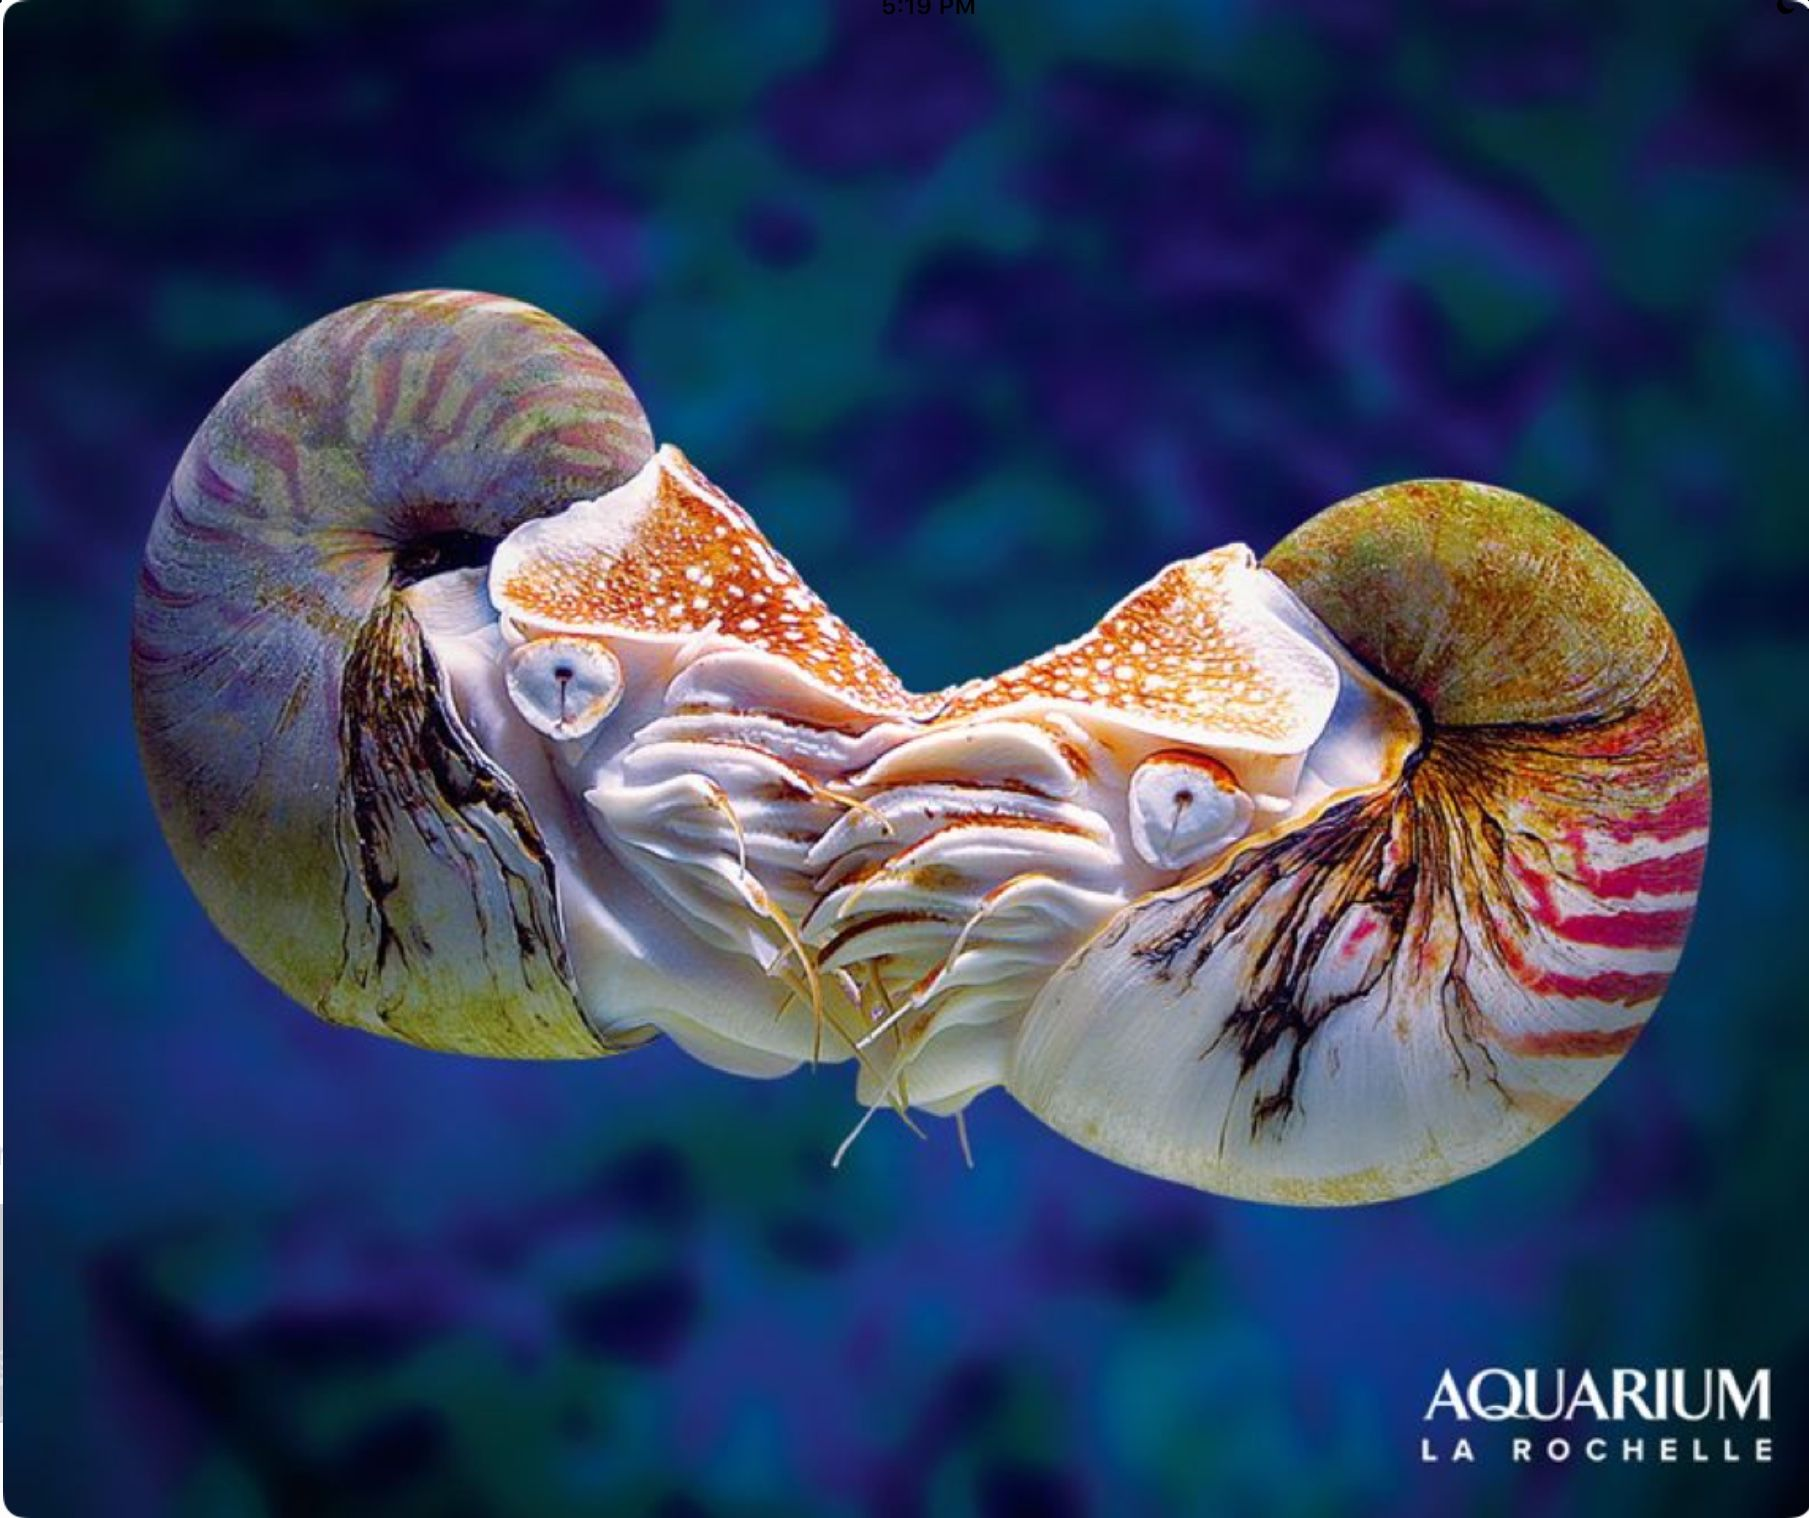 The beautiful and mysterious chambered nautilus is a living